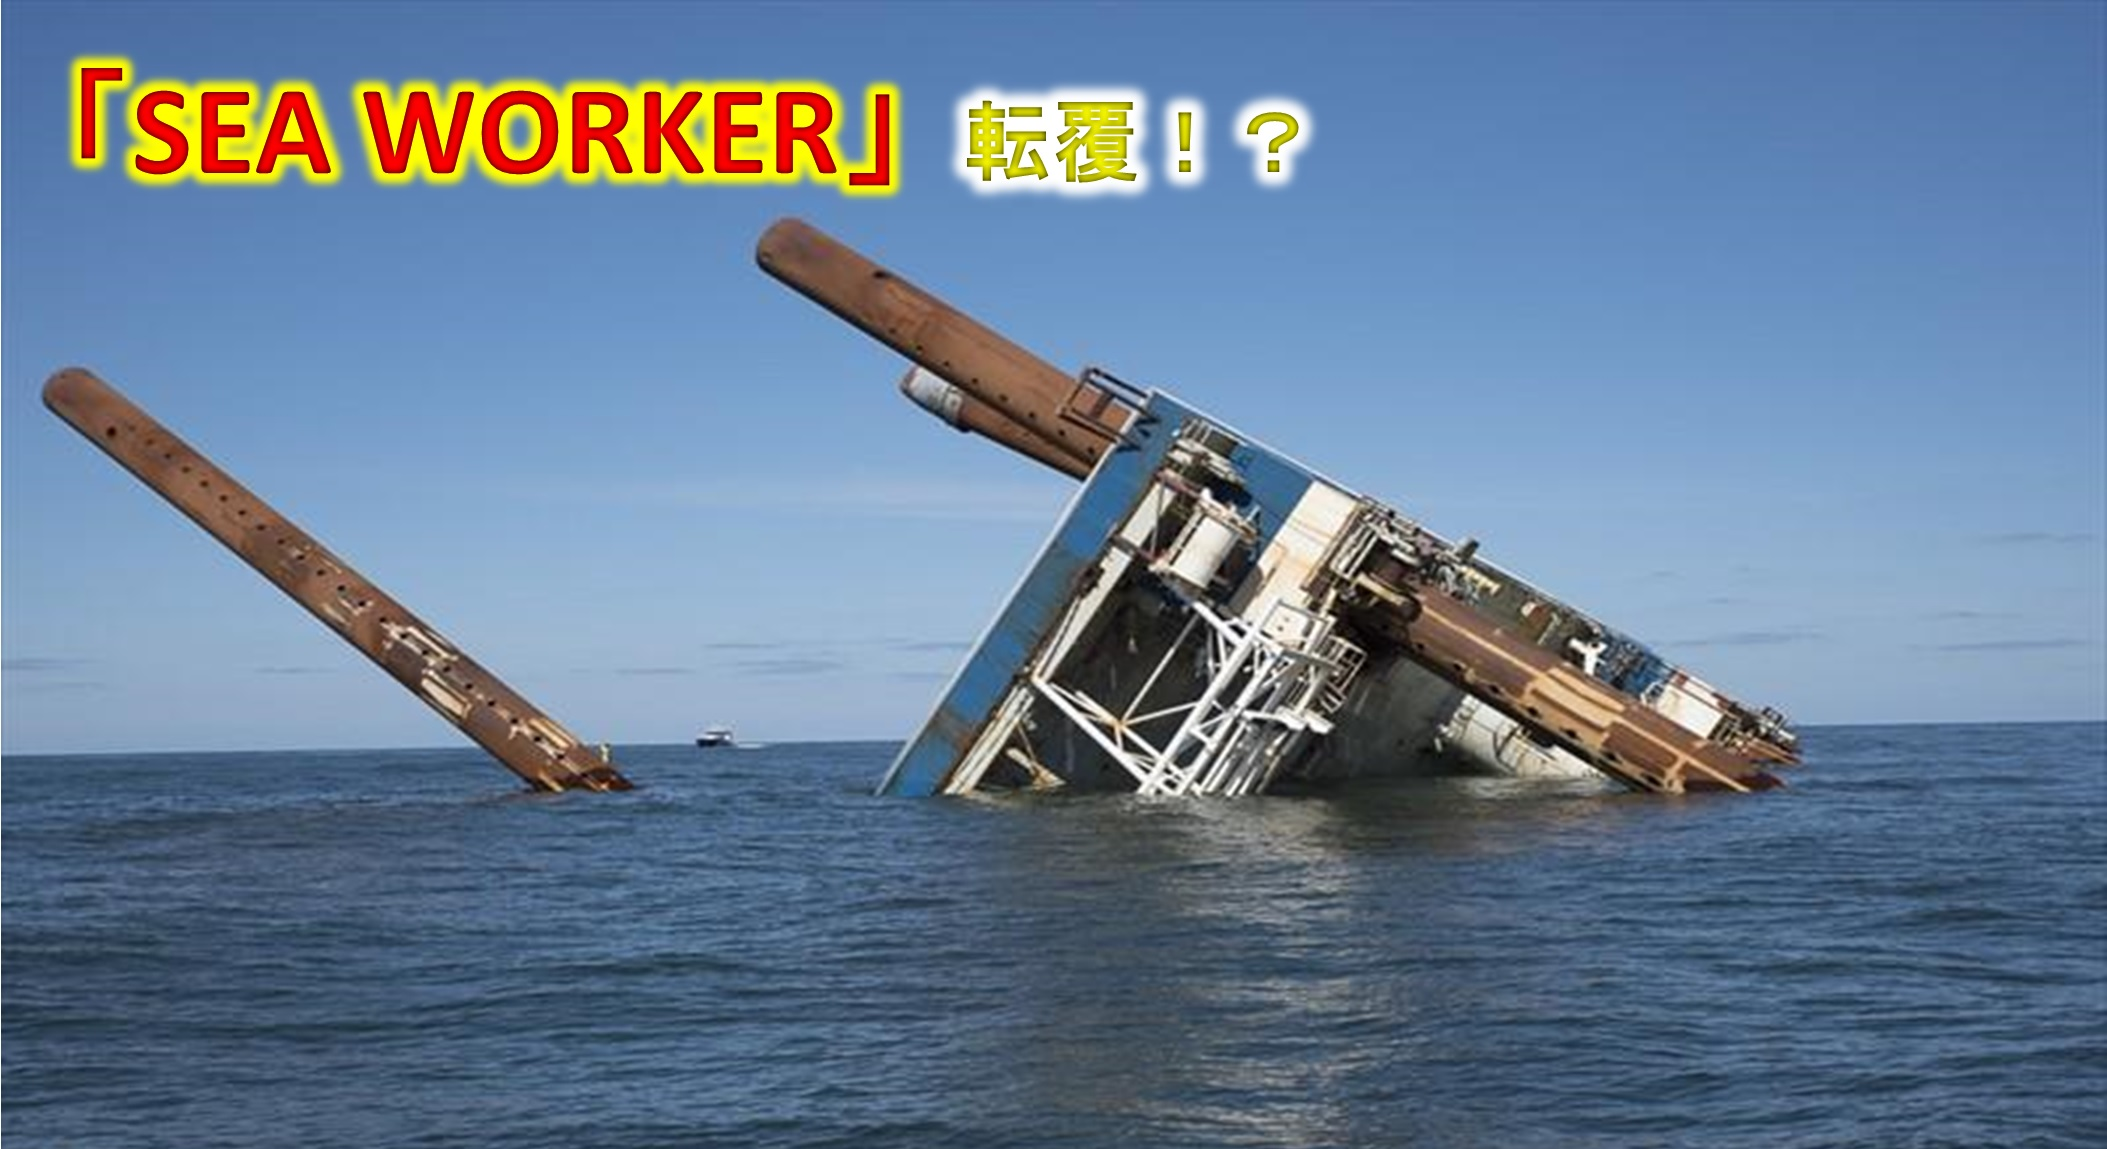 SEA_WORKER_title.jpg